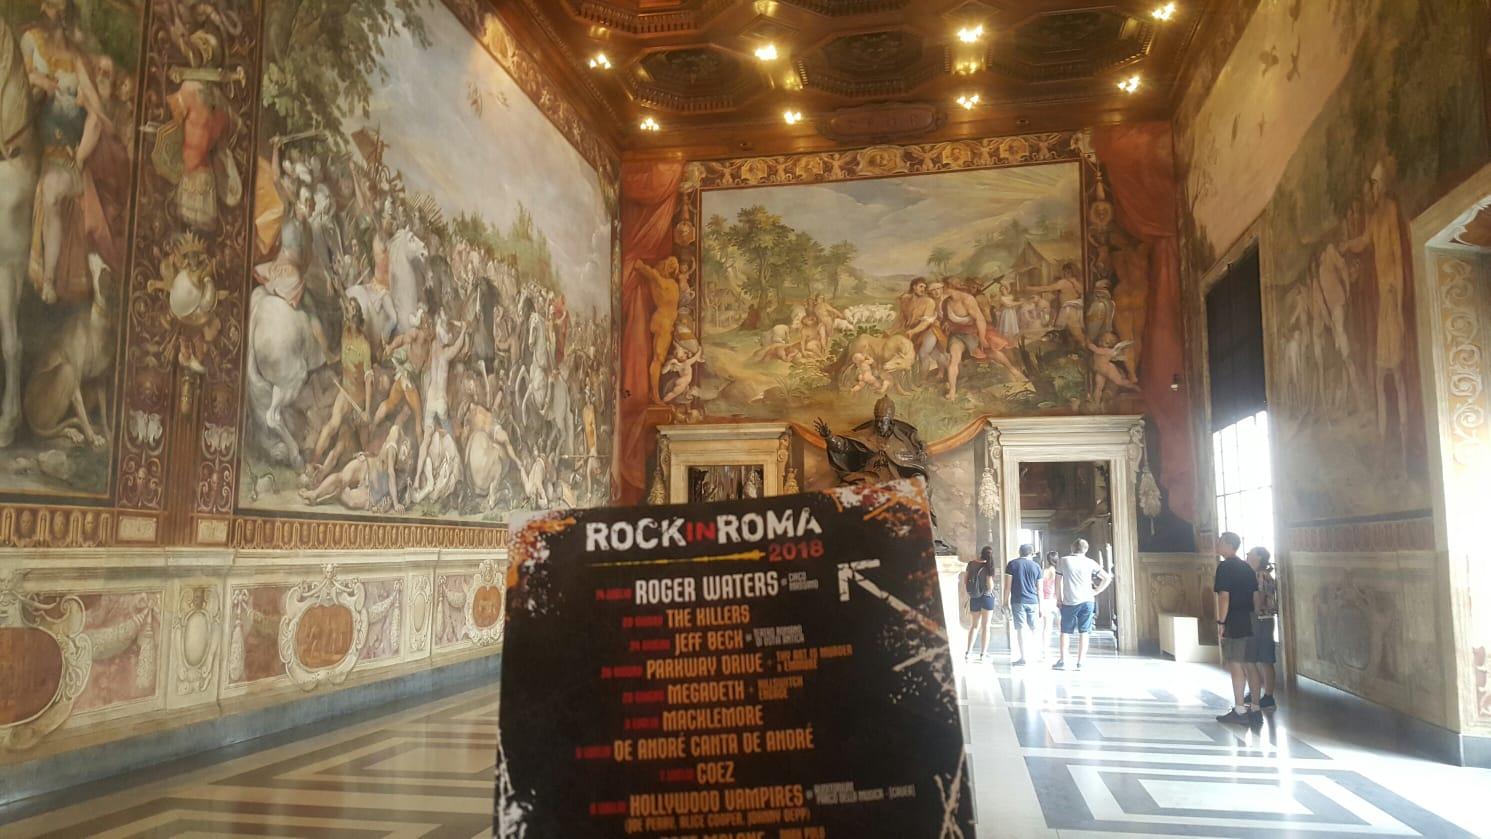 Rock in Roma 2018: la prestigiosa line up che infiamma l'estate romana